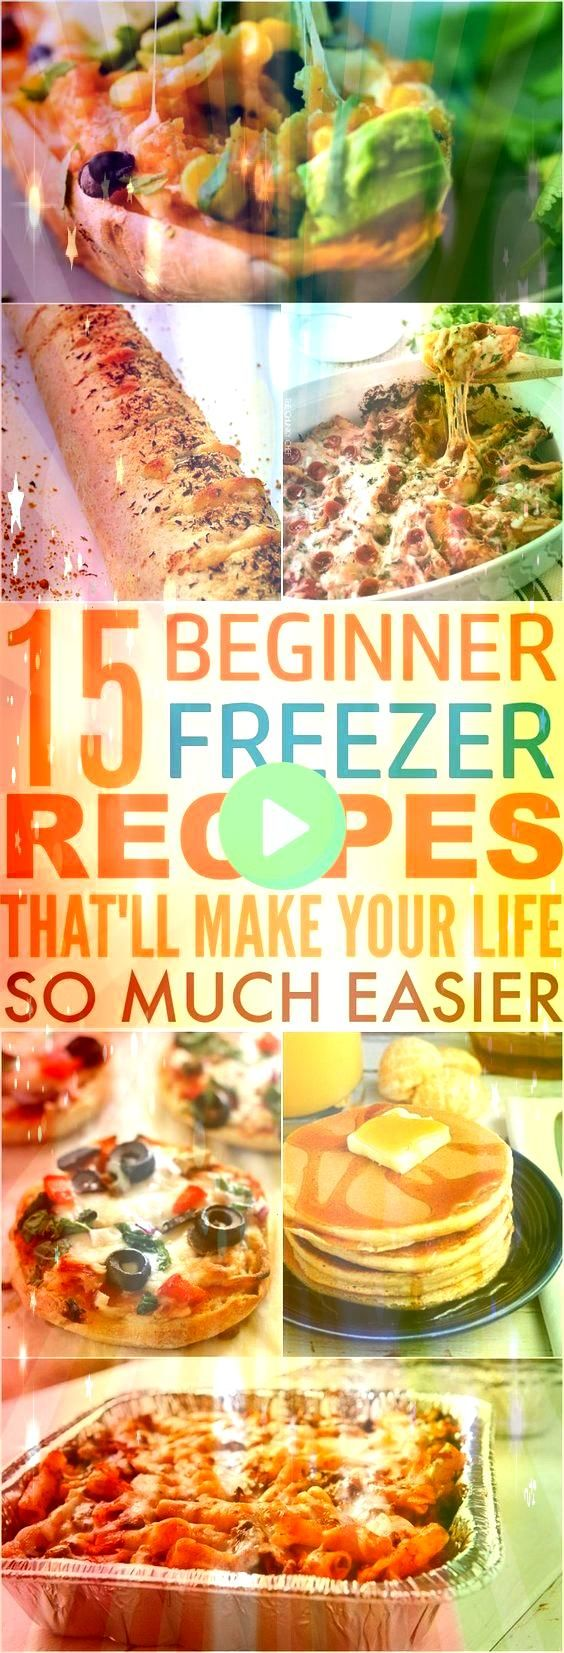 Quick Freezer Meal Prep Ideas Thatll Make Your Life Much Easier 40 Quick Freezer Meal Prep Ideas Thatll Make Your Life Much Easier  Our Slow Cooker Italian Beef Subs are...